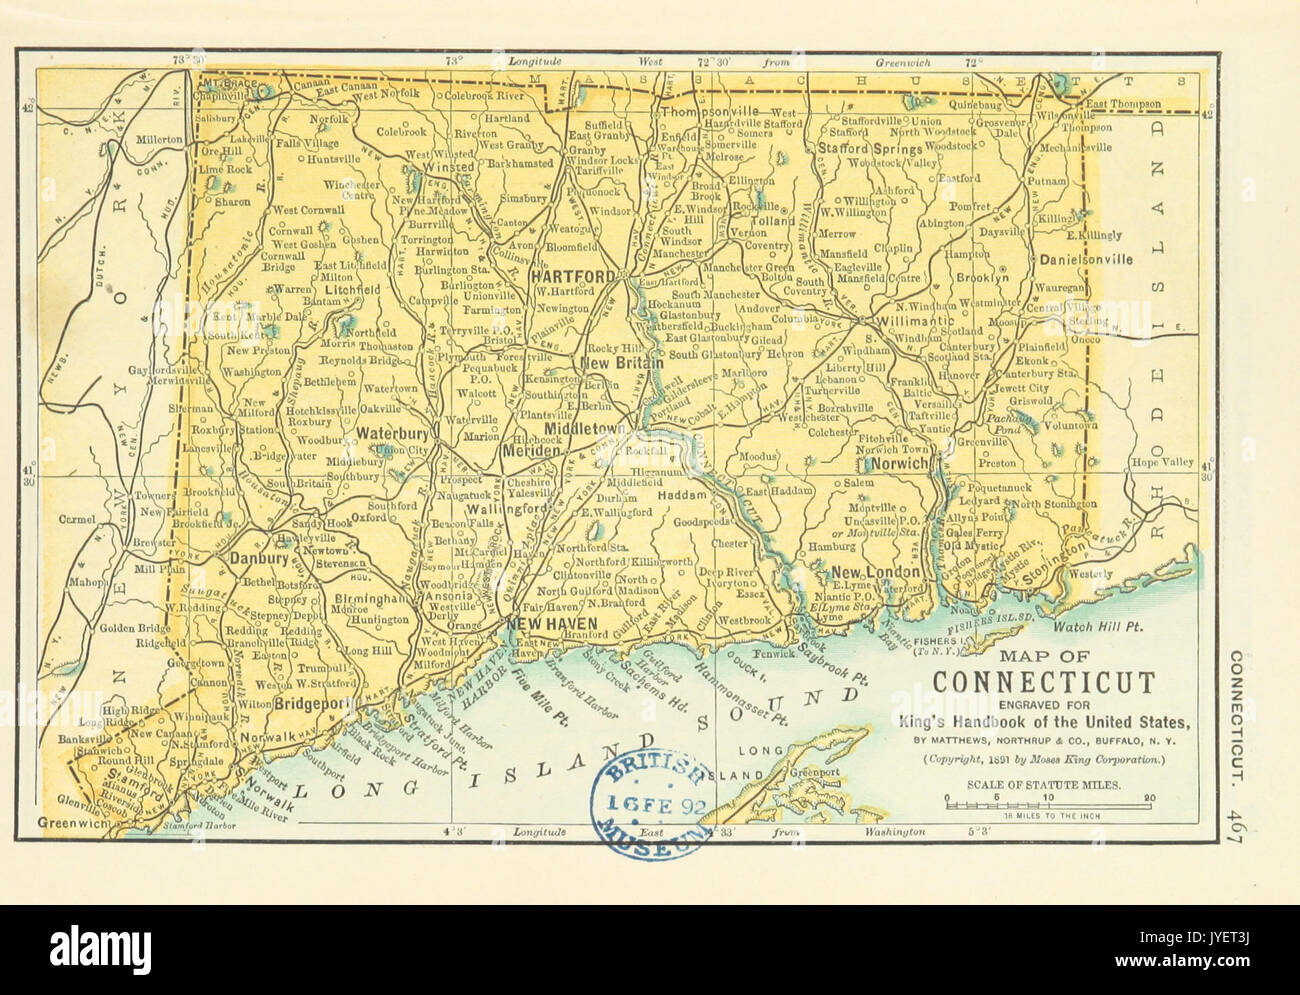 Conneticurt Us Map Us Maps P Map Of Connecticut Stock - Maps of connecticut